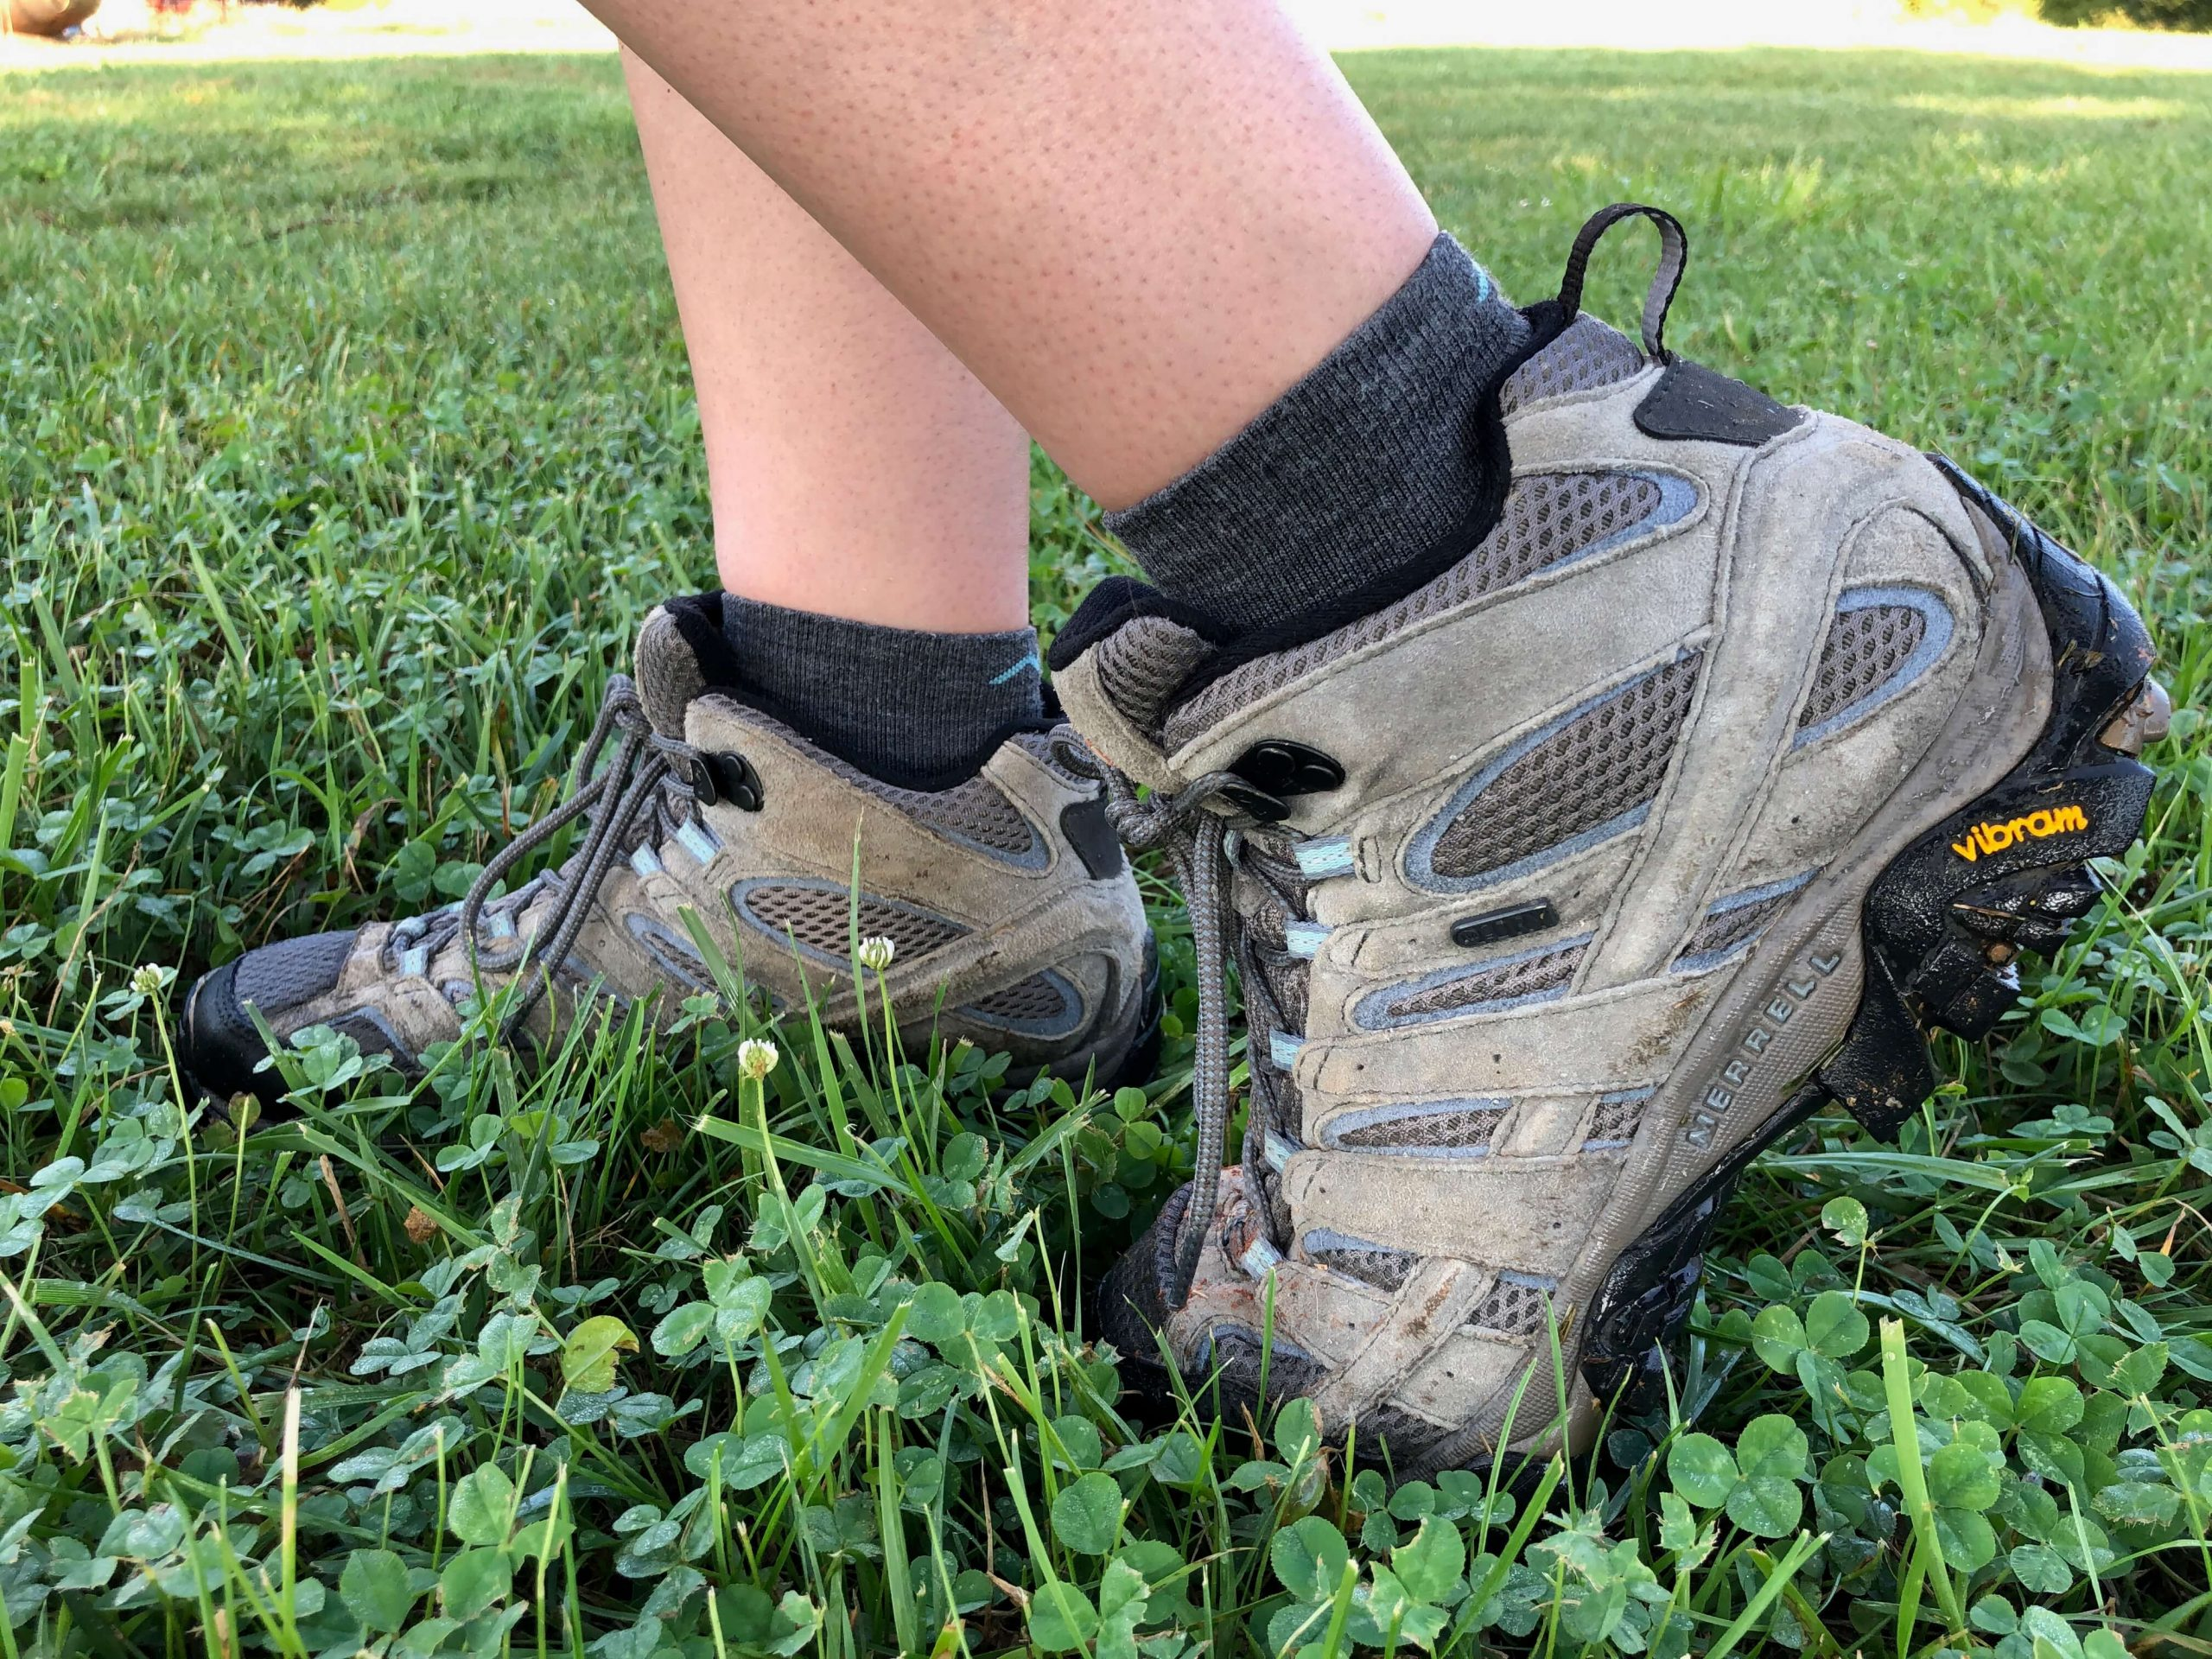 hiking boots in grass gifts for outdoorsy women